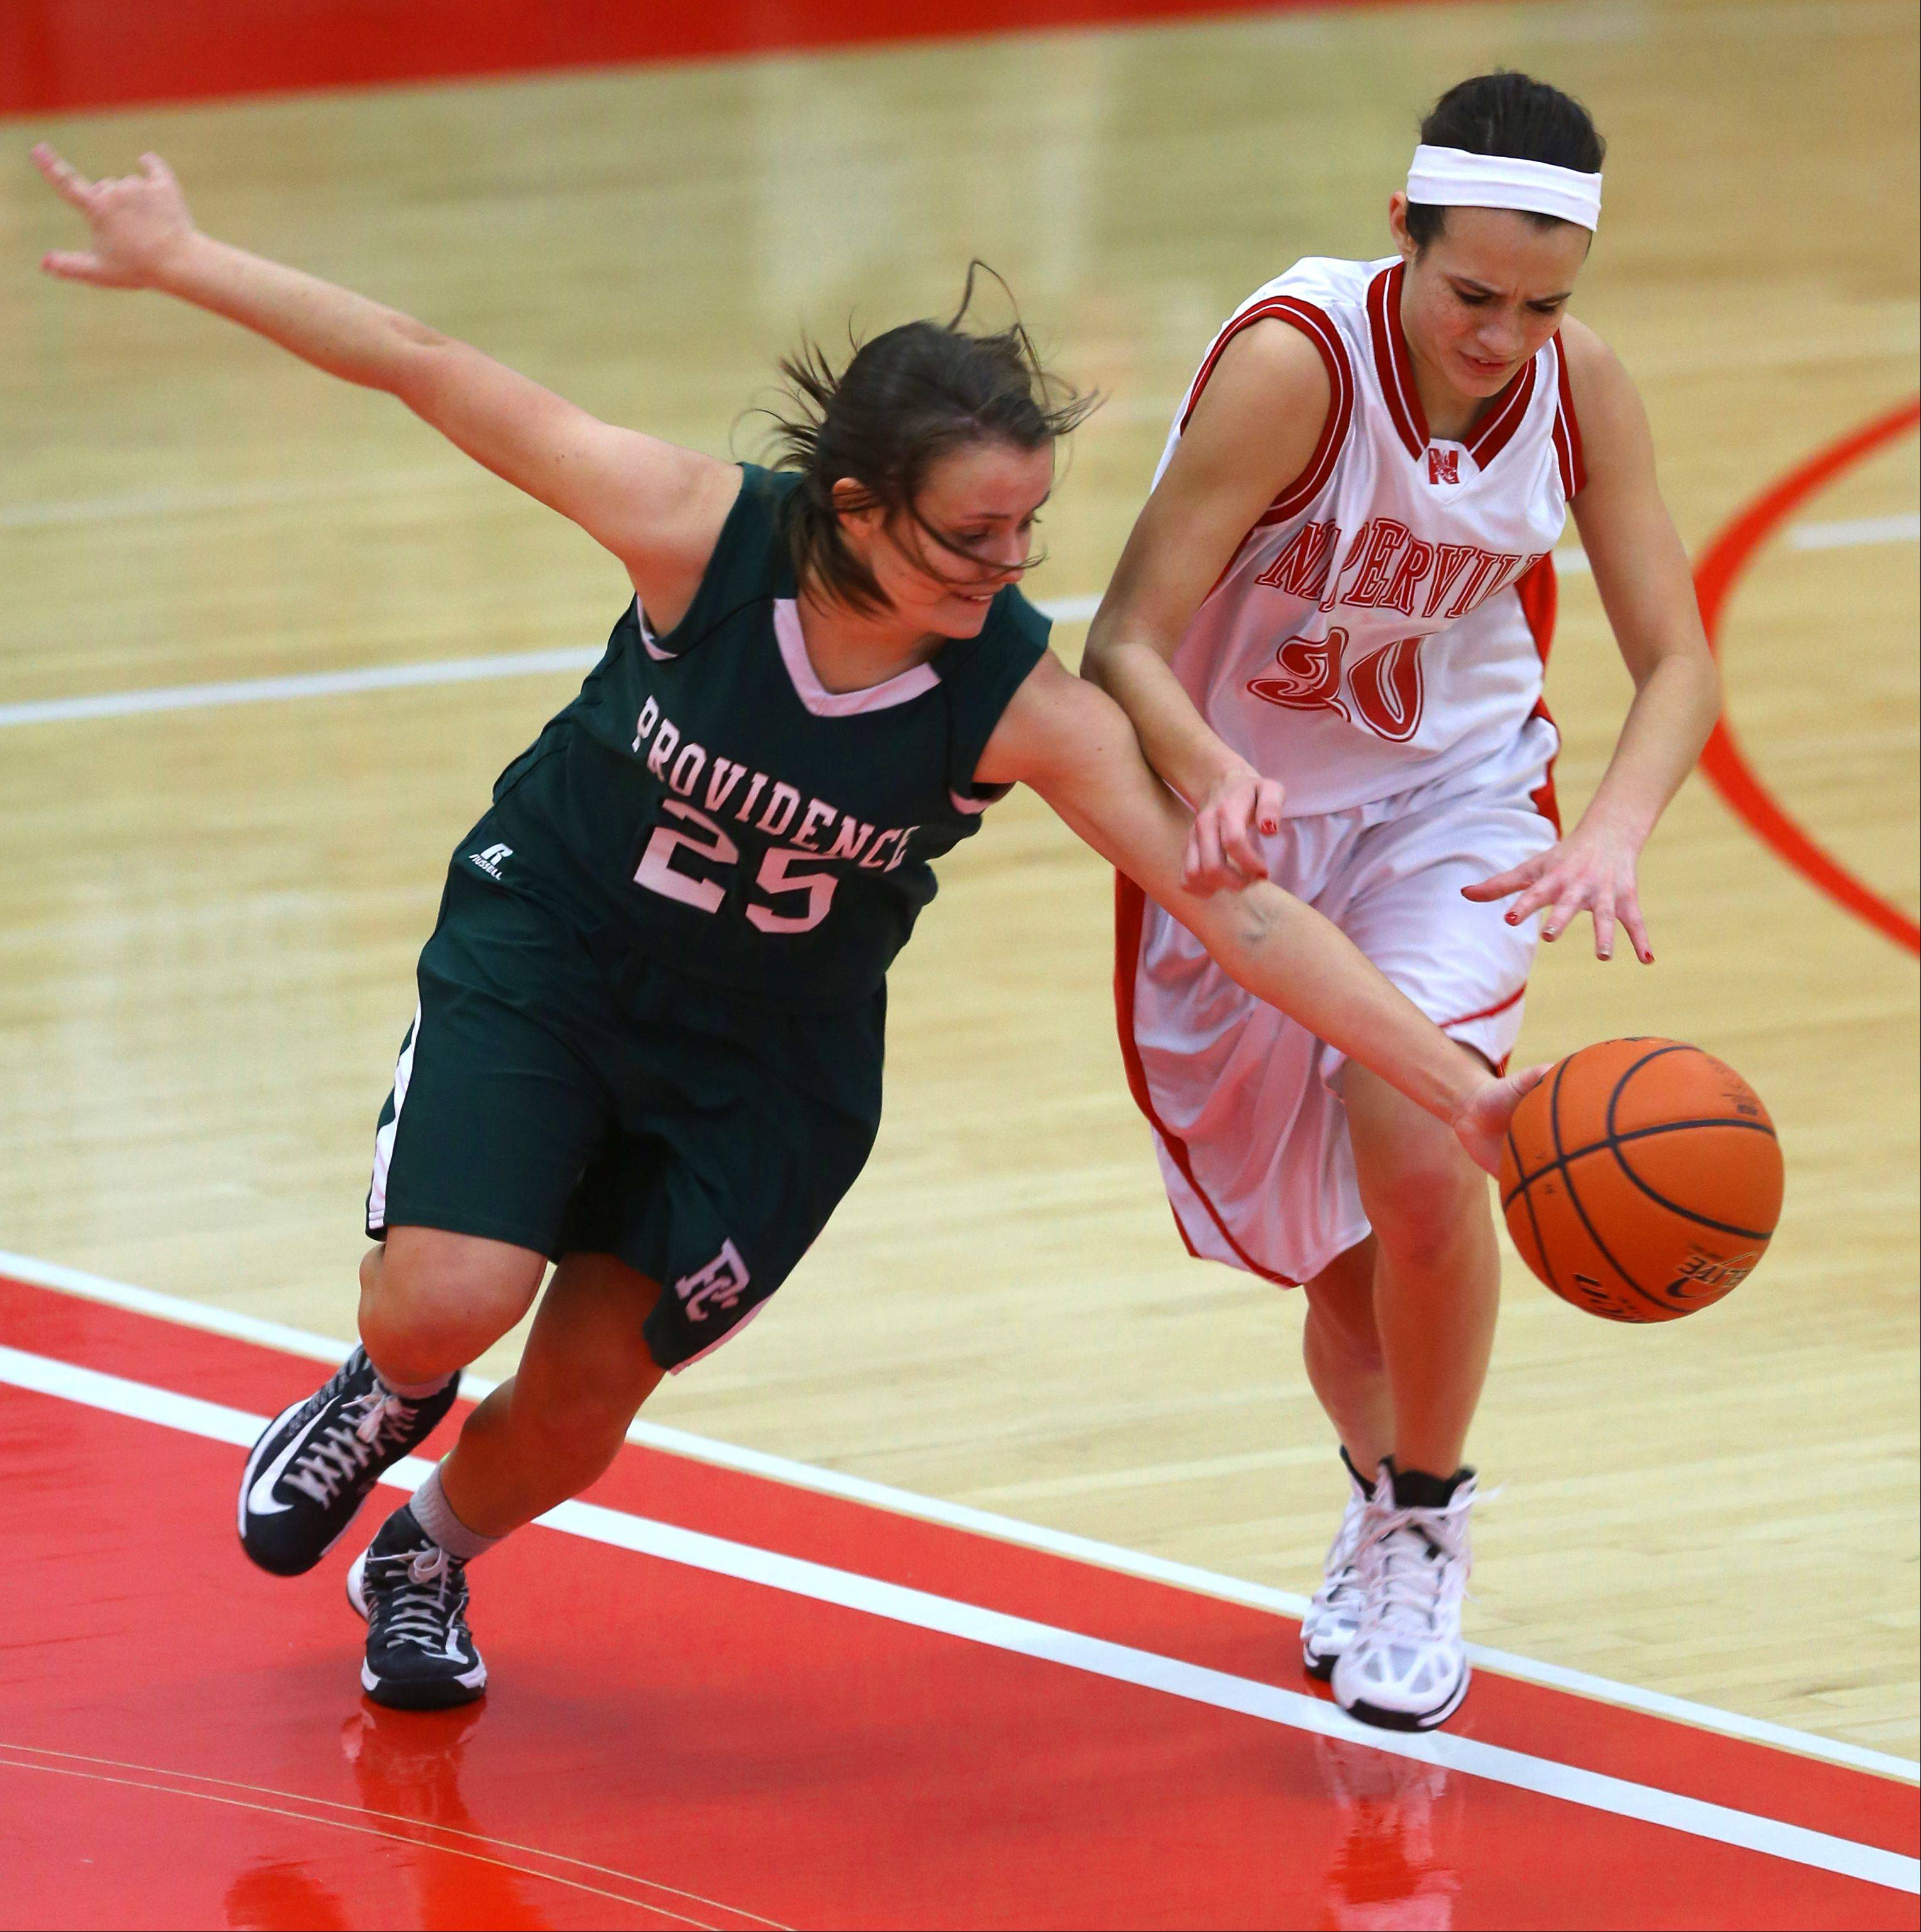 Naperville Central's Shannon Ryan, right, battles Providence's Anne Corso (25), during the 2013 girls basketball Tip-Off Tournament.